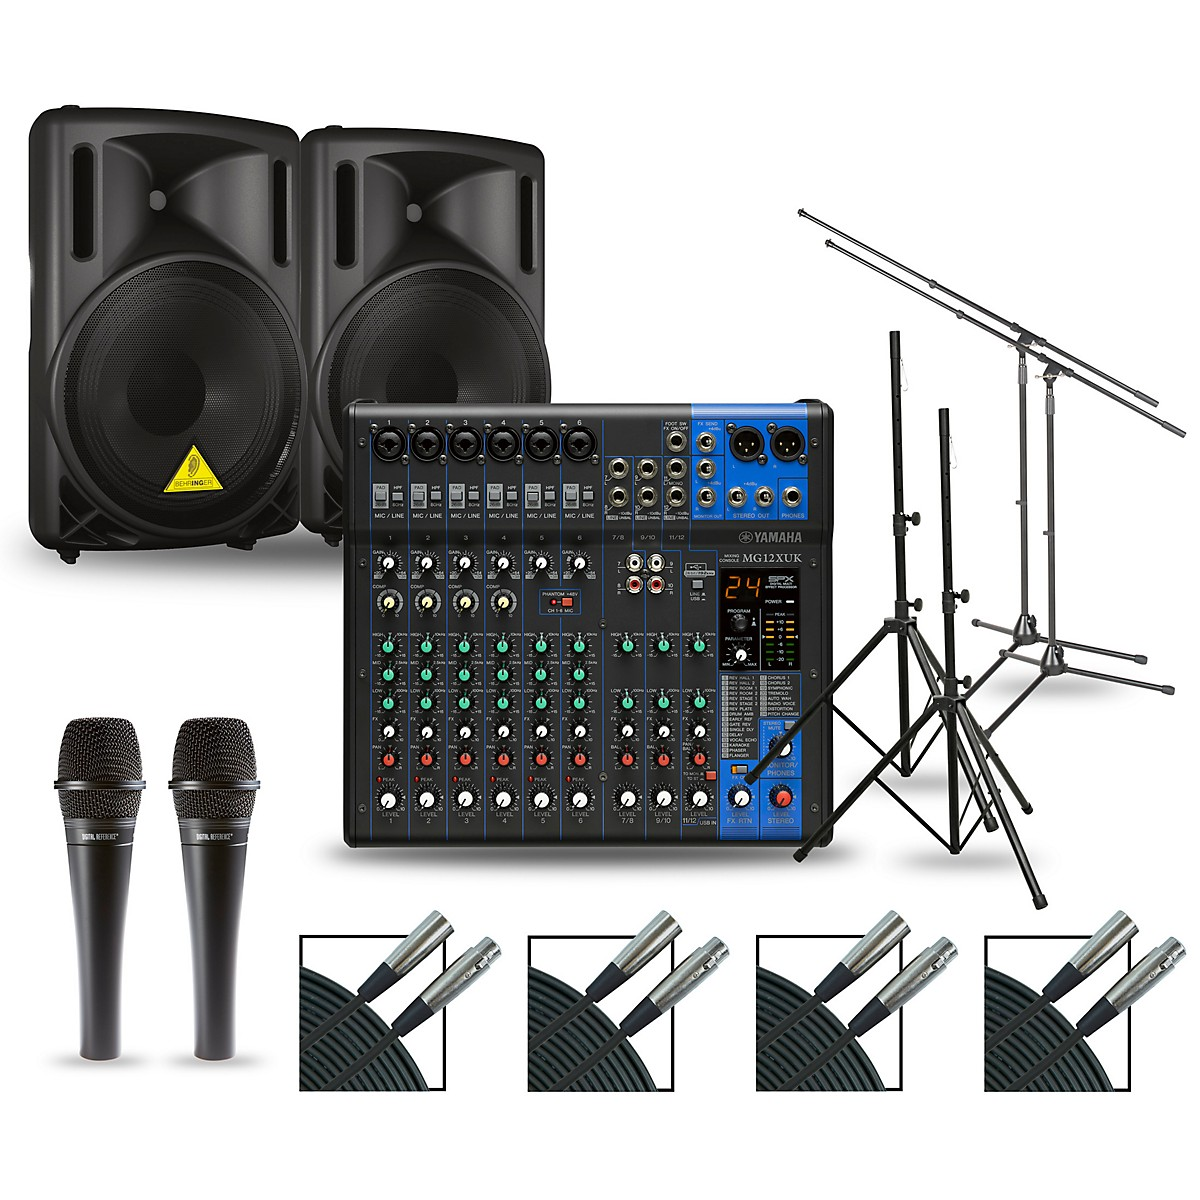 Yamaha Complete PA Package with MG12XUK Mixer and Behringer Eurolive BD Speakers